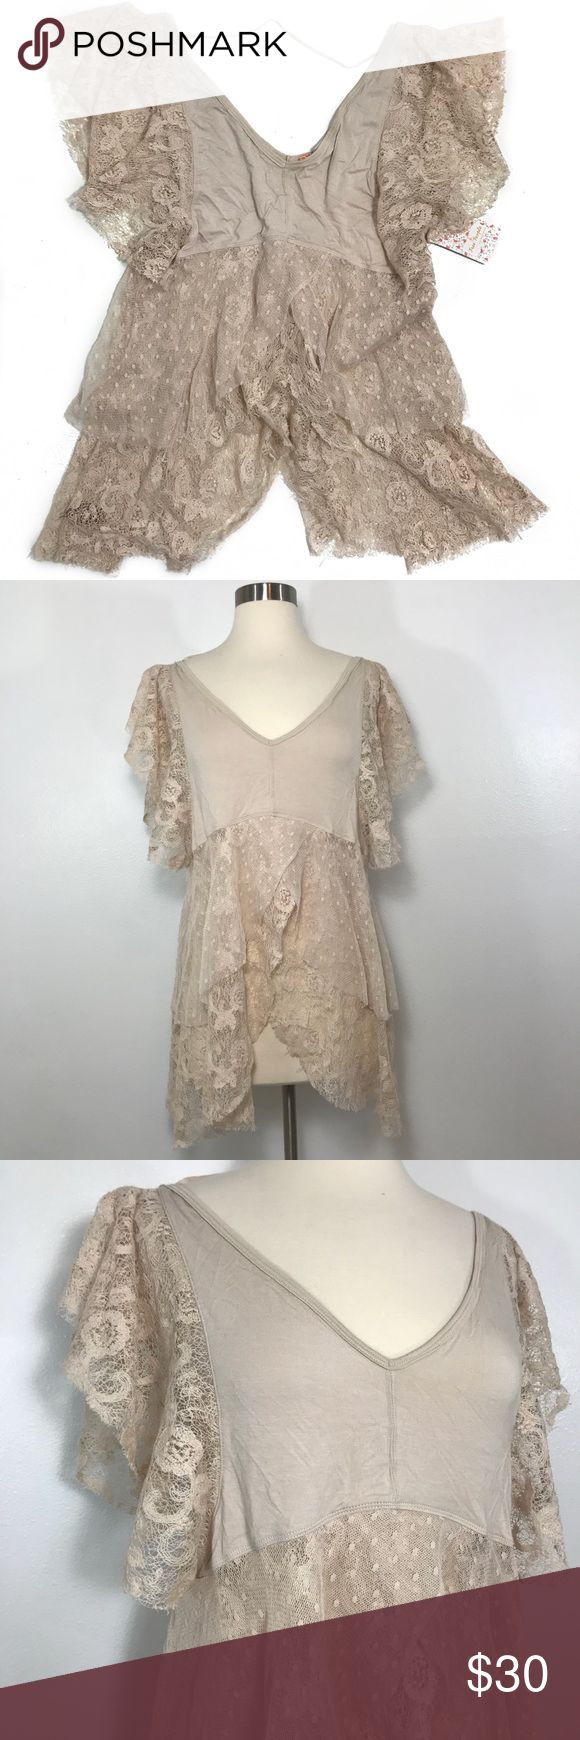 NWT Free People Blouse • Beige tee blouse with lace detailing for the sleeves and lower half of the top. Free People Tops